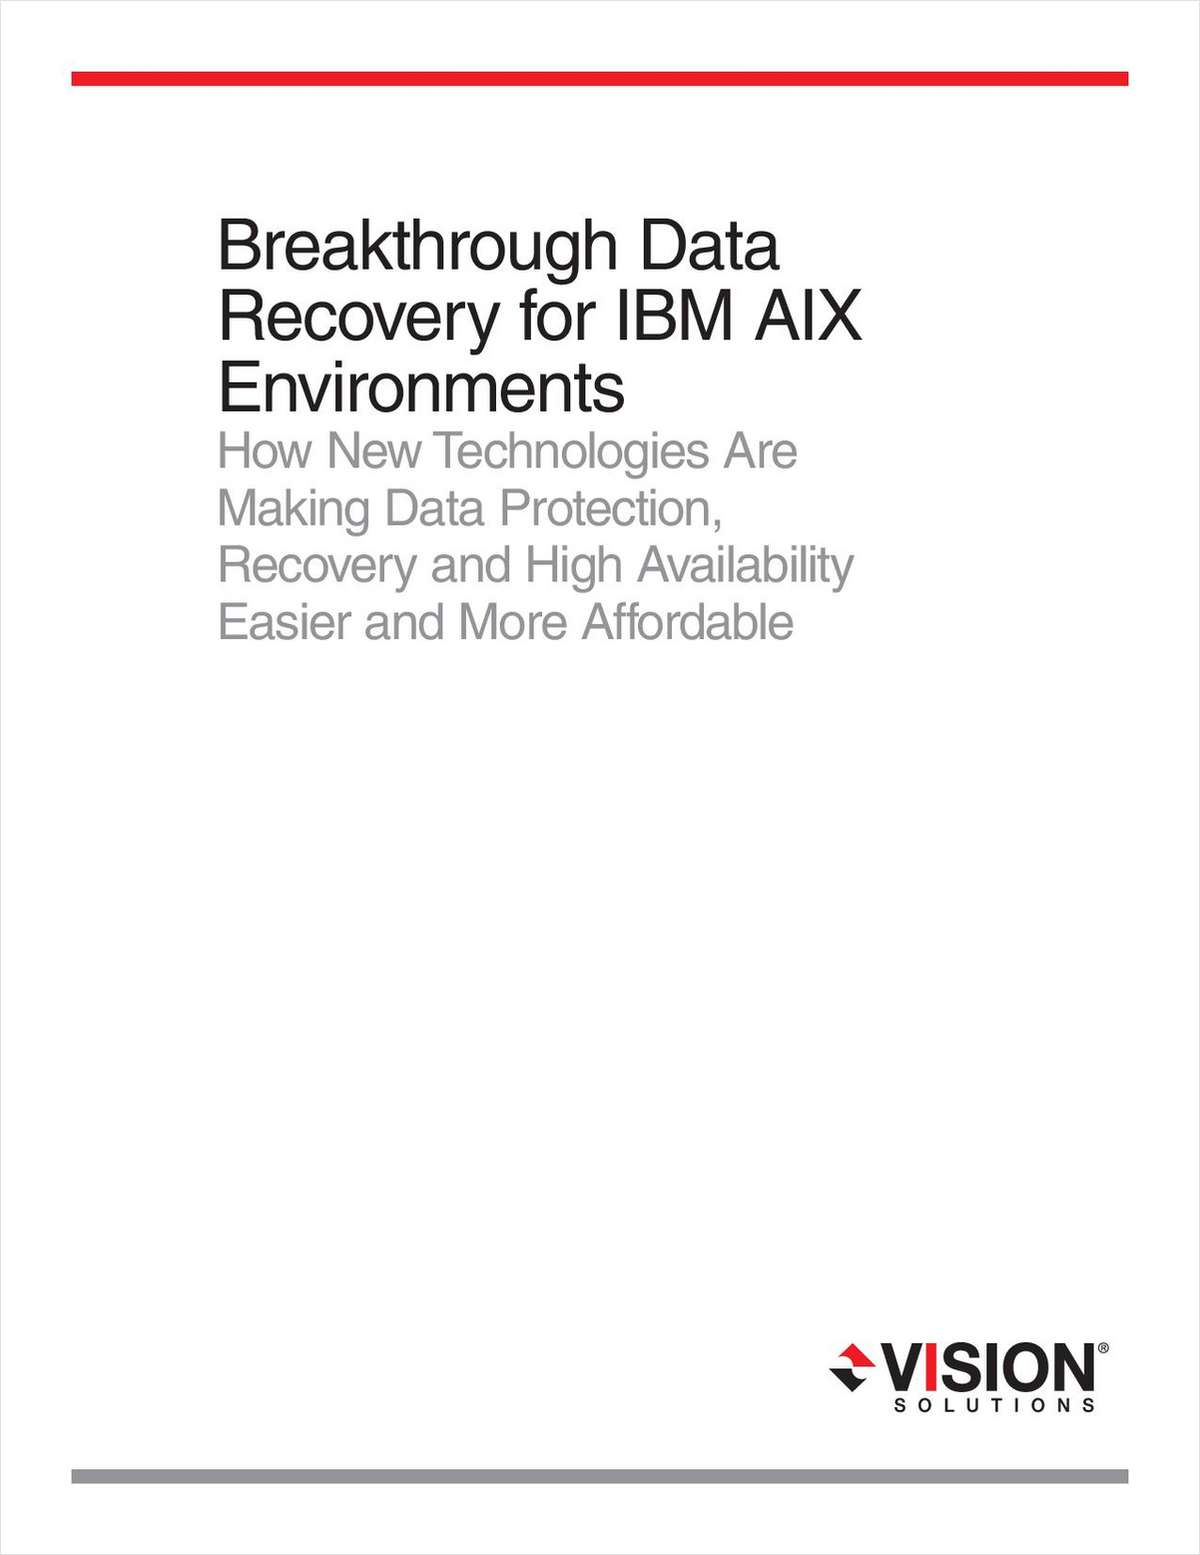 Data Replication and CDP for IBM AIX Environments